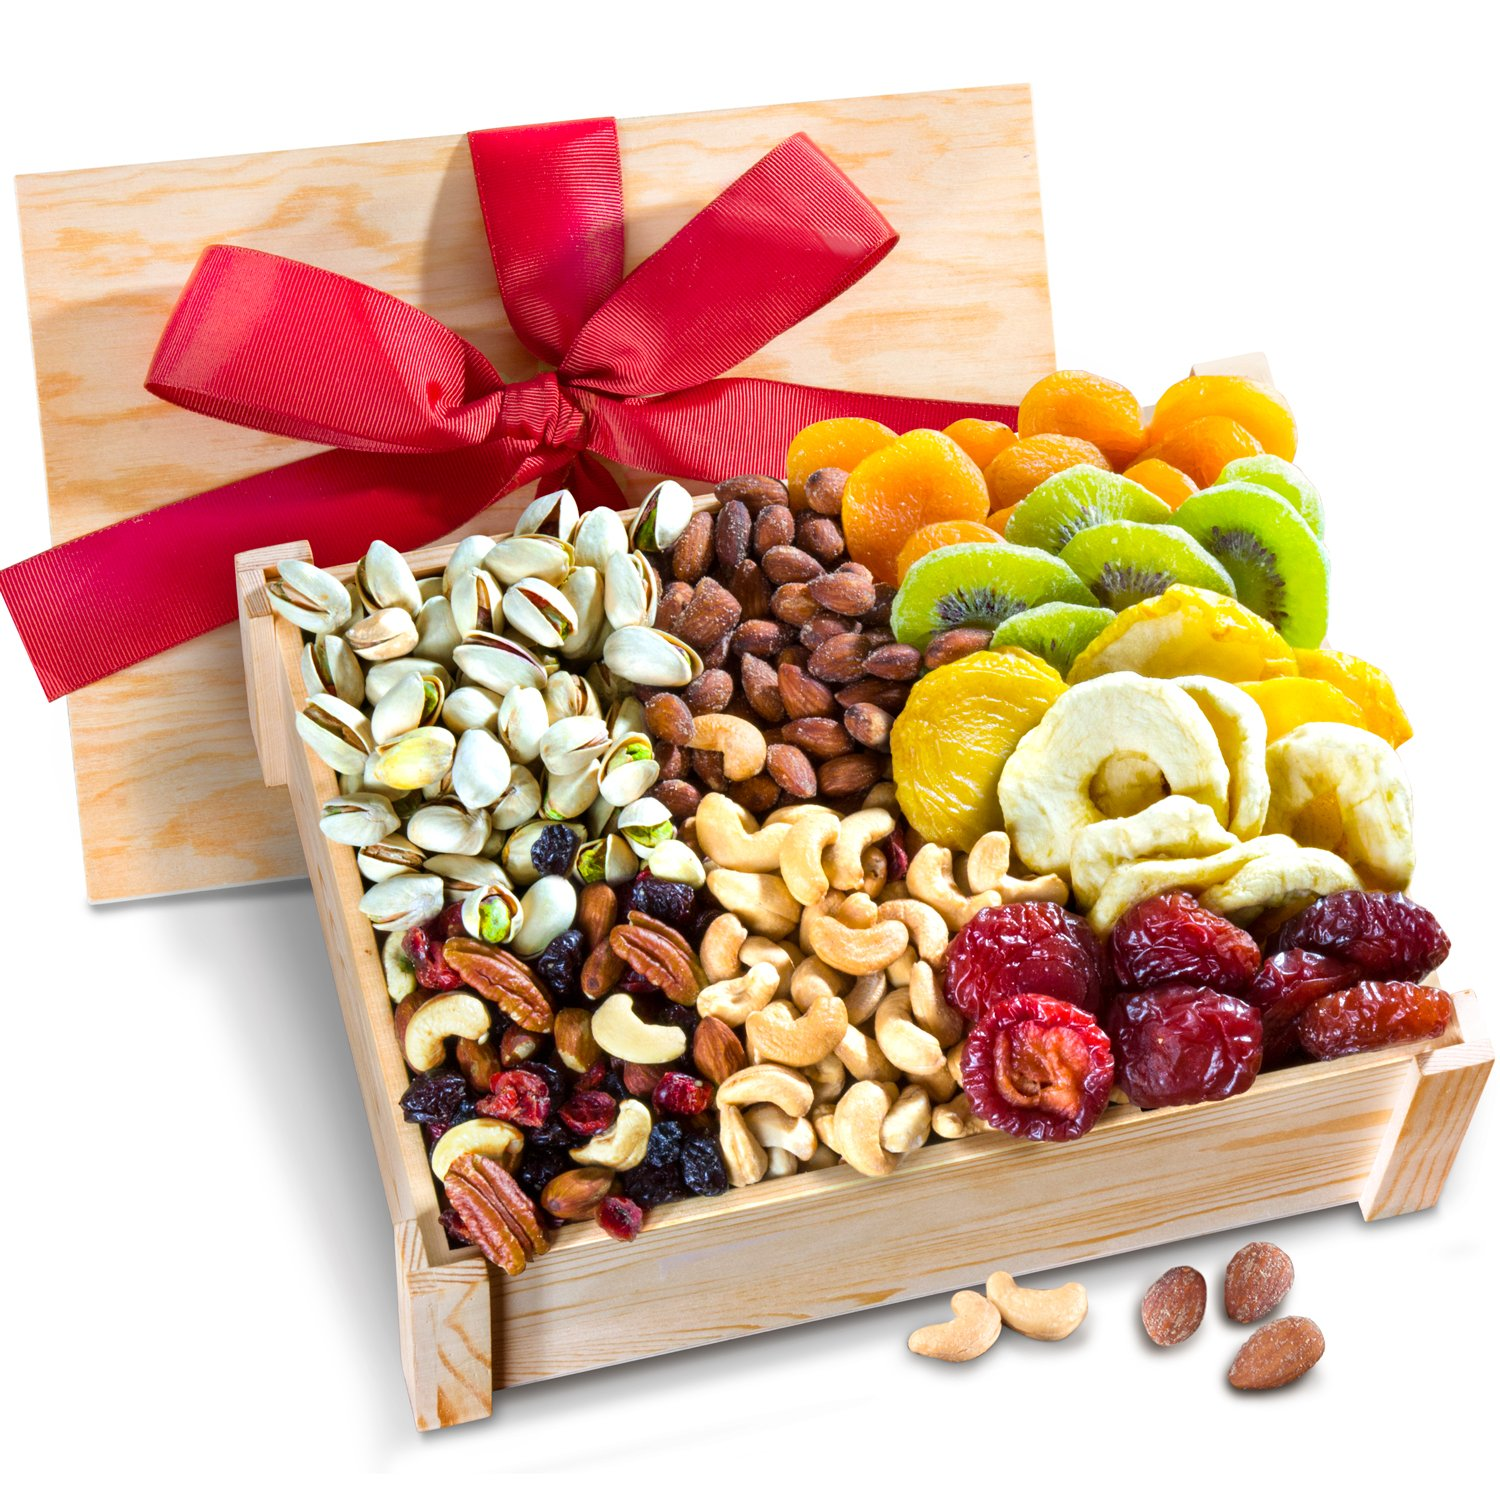 Golden State Fruit Healthy Abundance Dried Fruit & Nuts Gift Crate by Golden State Fruit (Image #1)